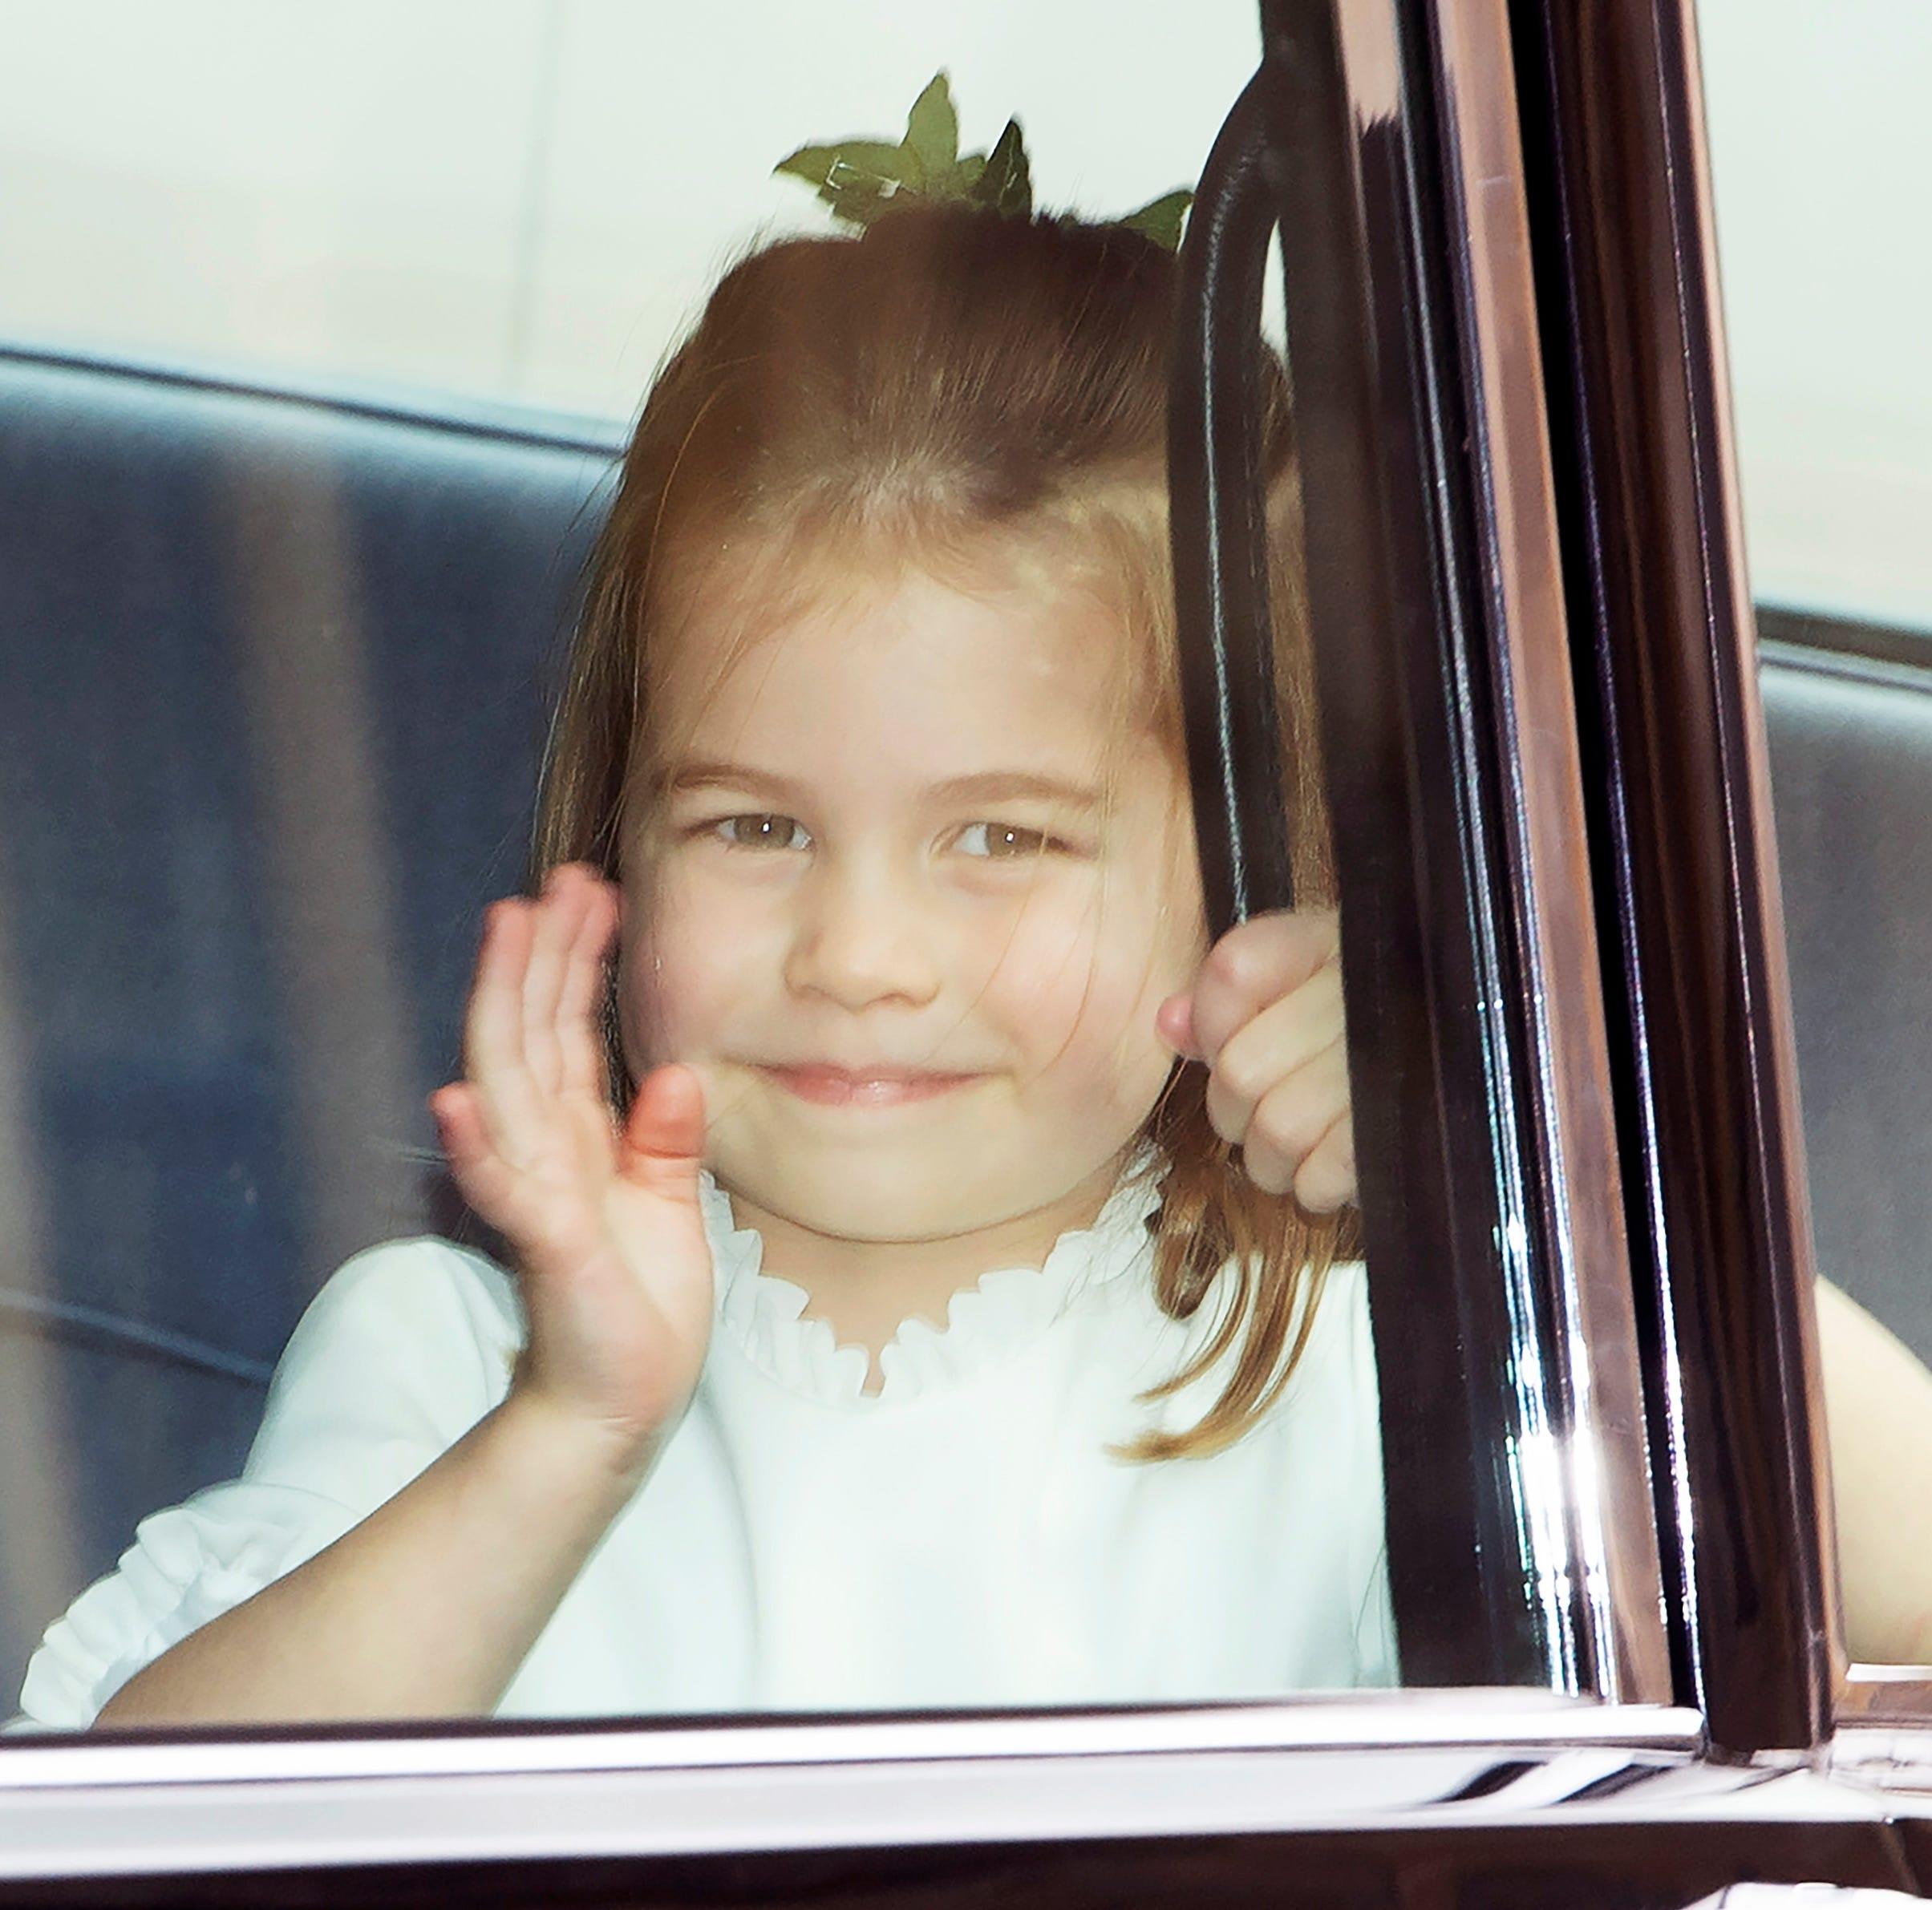 epa07087803 Princess Charlotte waves to people as she arrives for the royal wedding ceremony of Princess Eugenie of York and Jack Brooksbank at St George's Chapel at Windsor Castle, in Windsor, Britain, 12 October 2018.  EPA-EFE/FACUNDO ARRIZABALAGA ORG XMIT: VF001